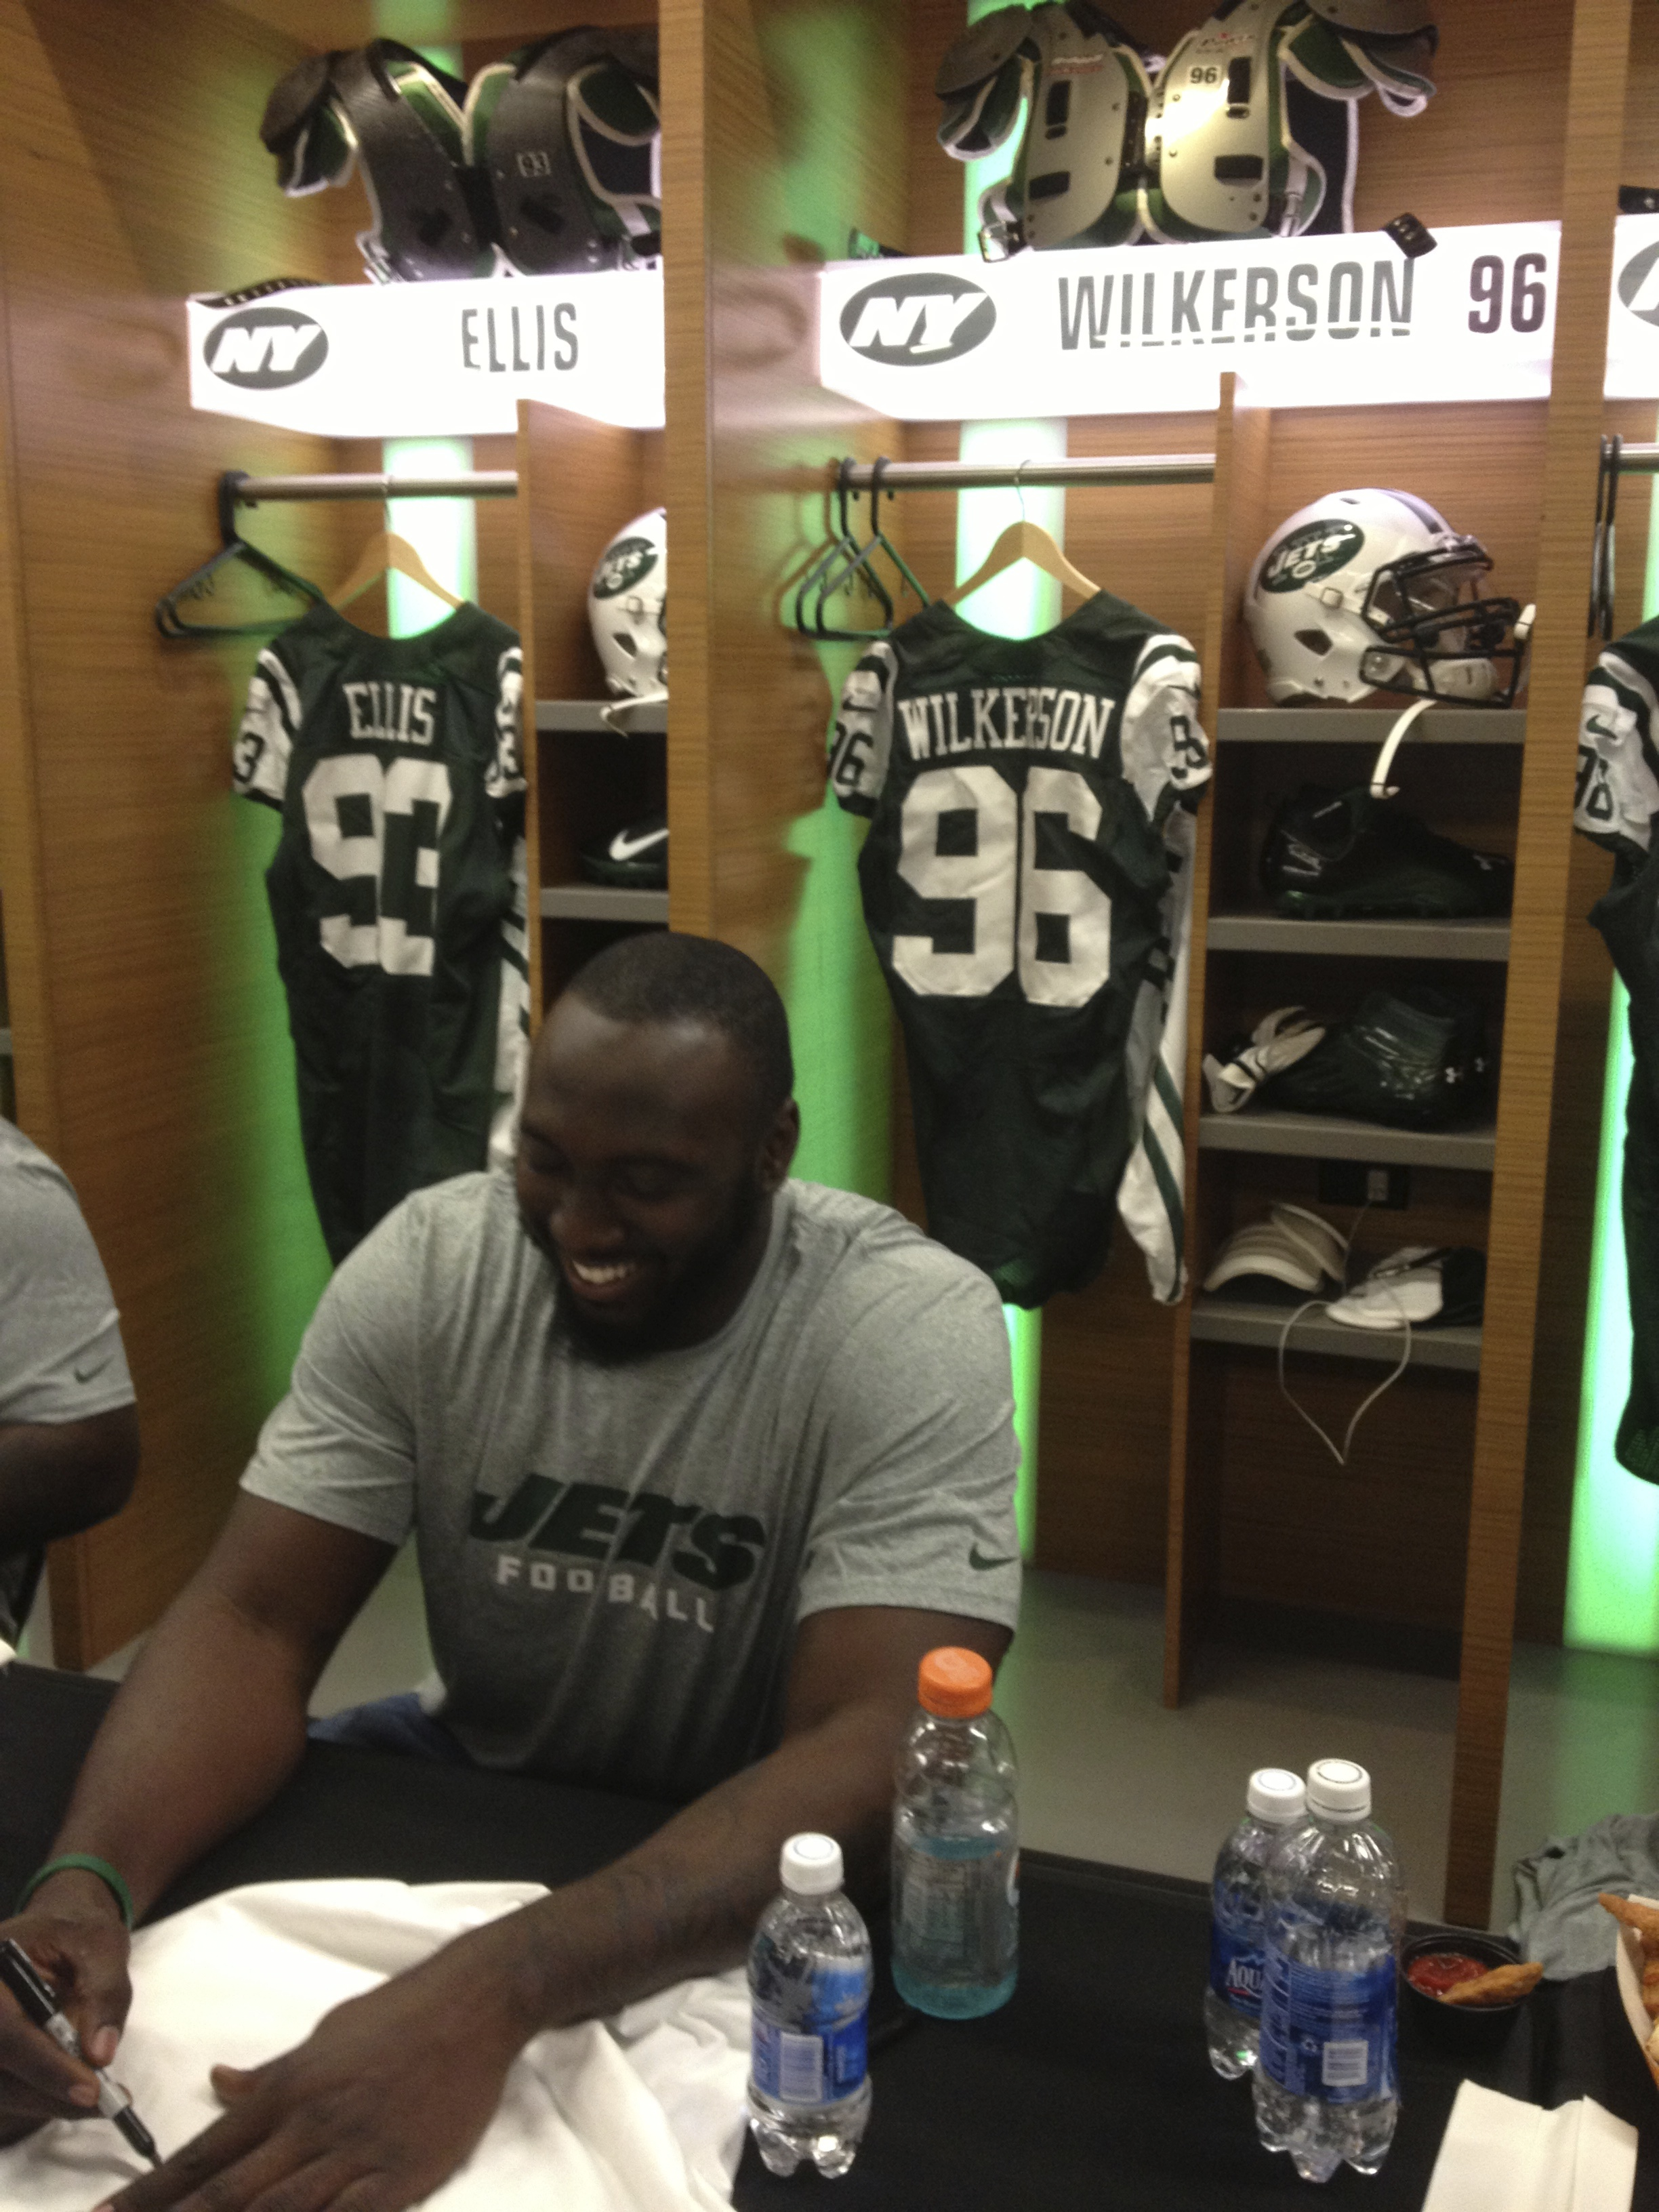 wilkerson toe injury